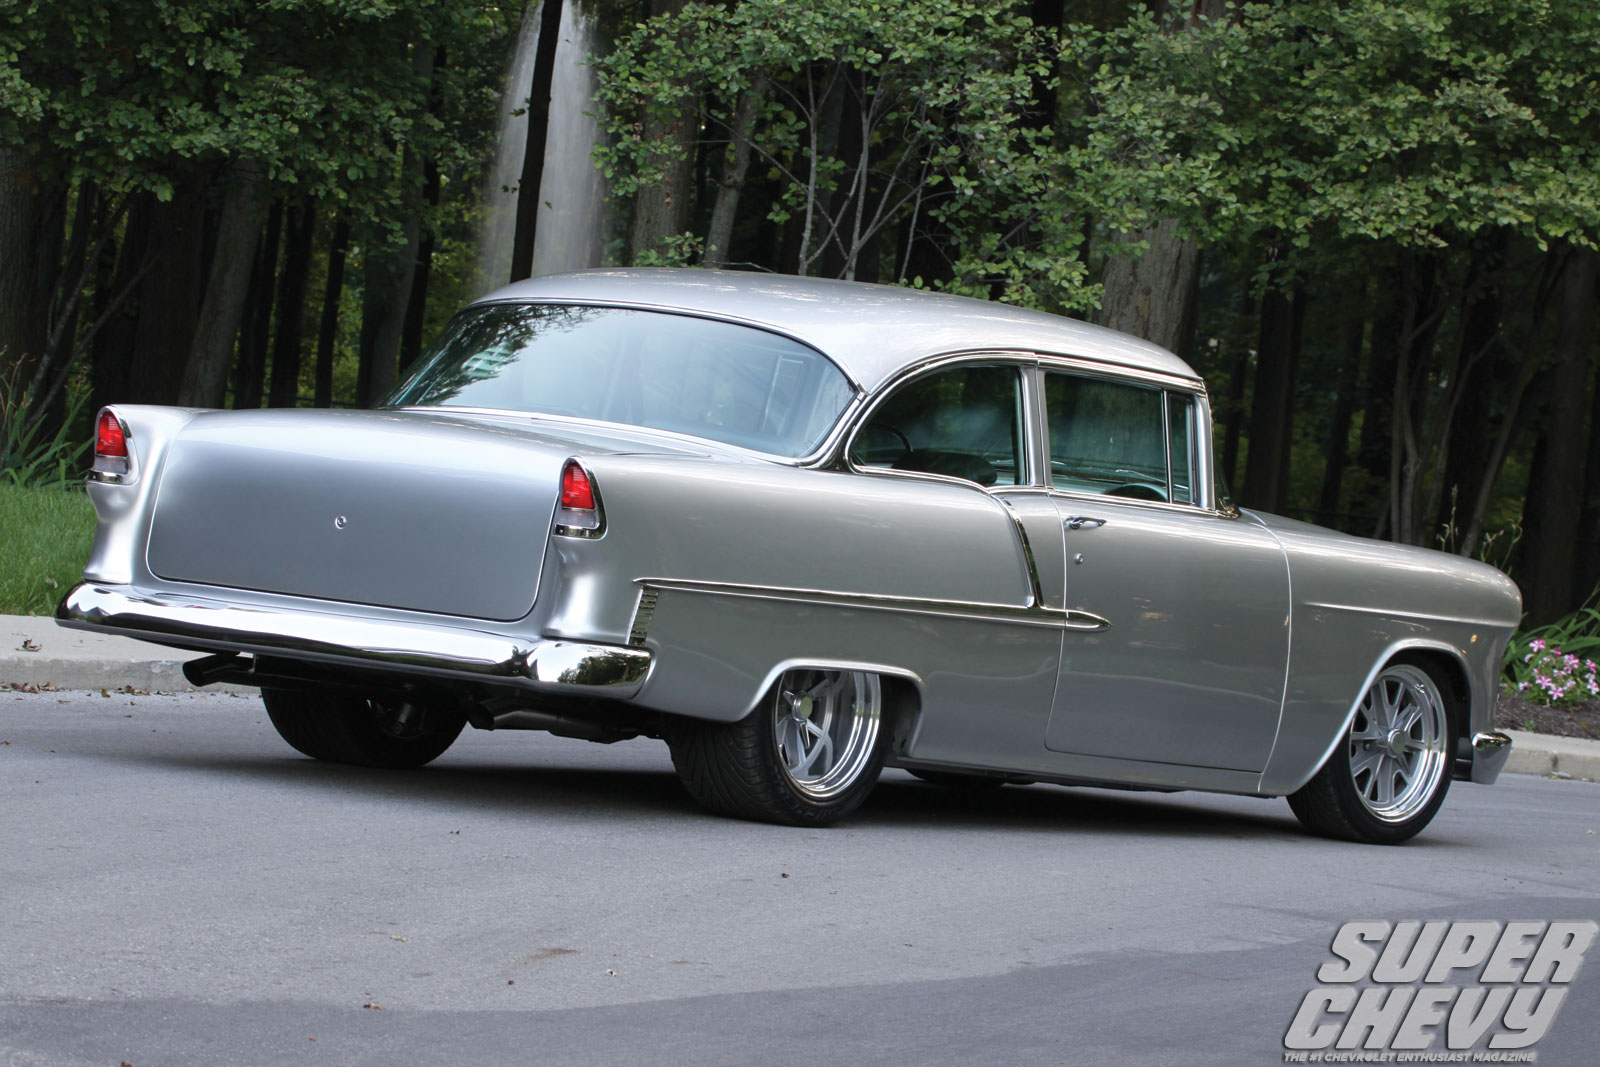 1955 Chevrolet Bel Air #11